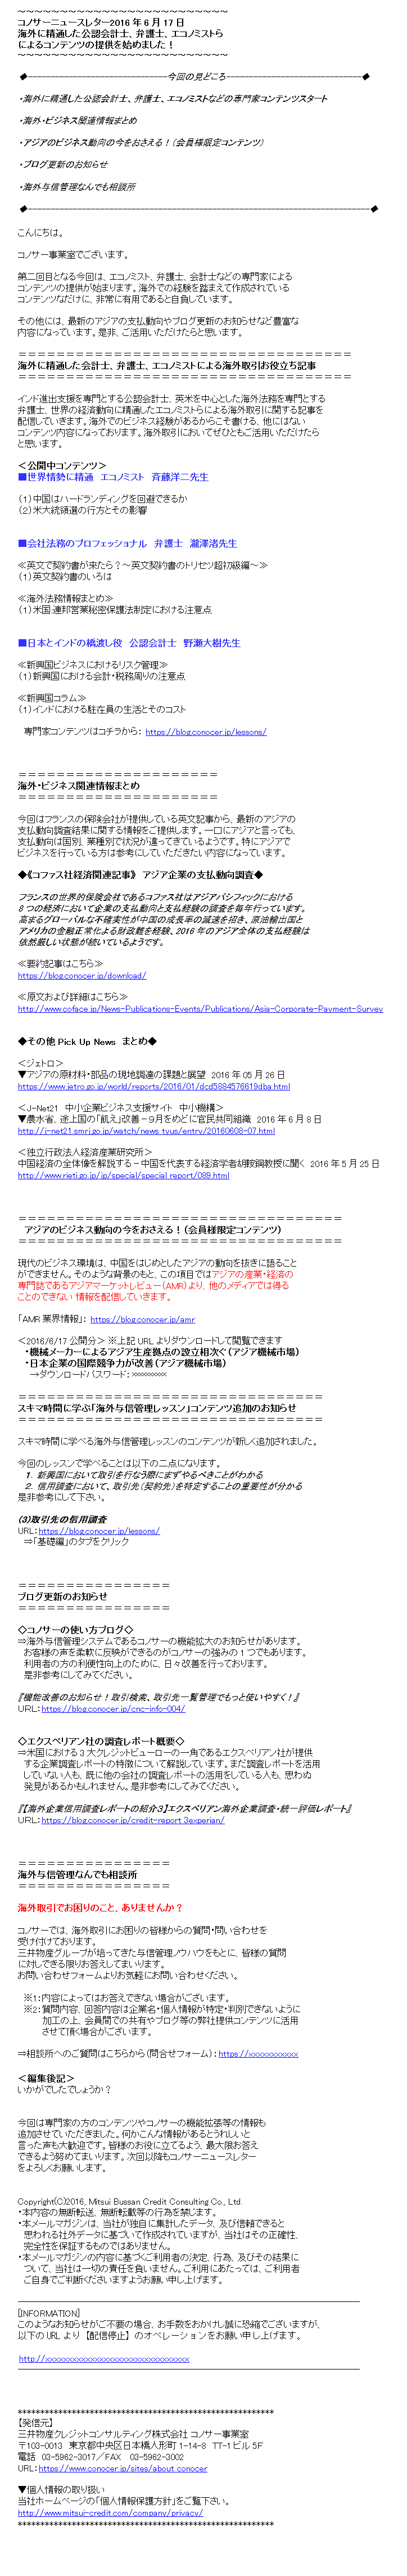 mail_sample